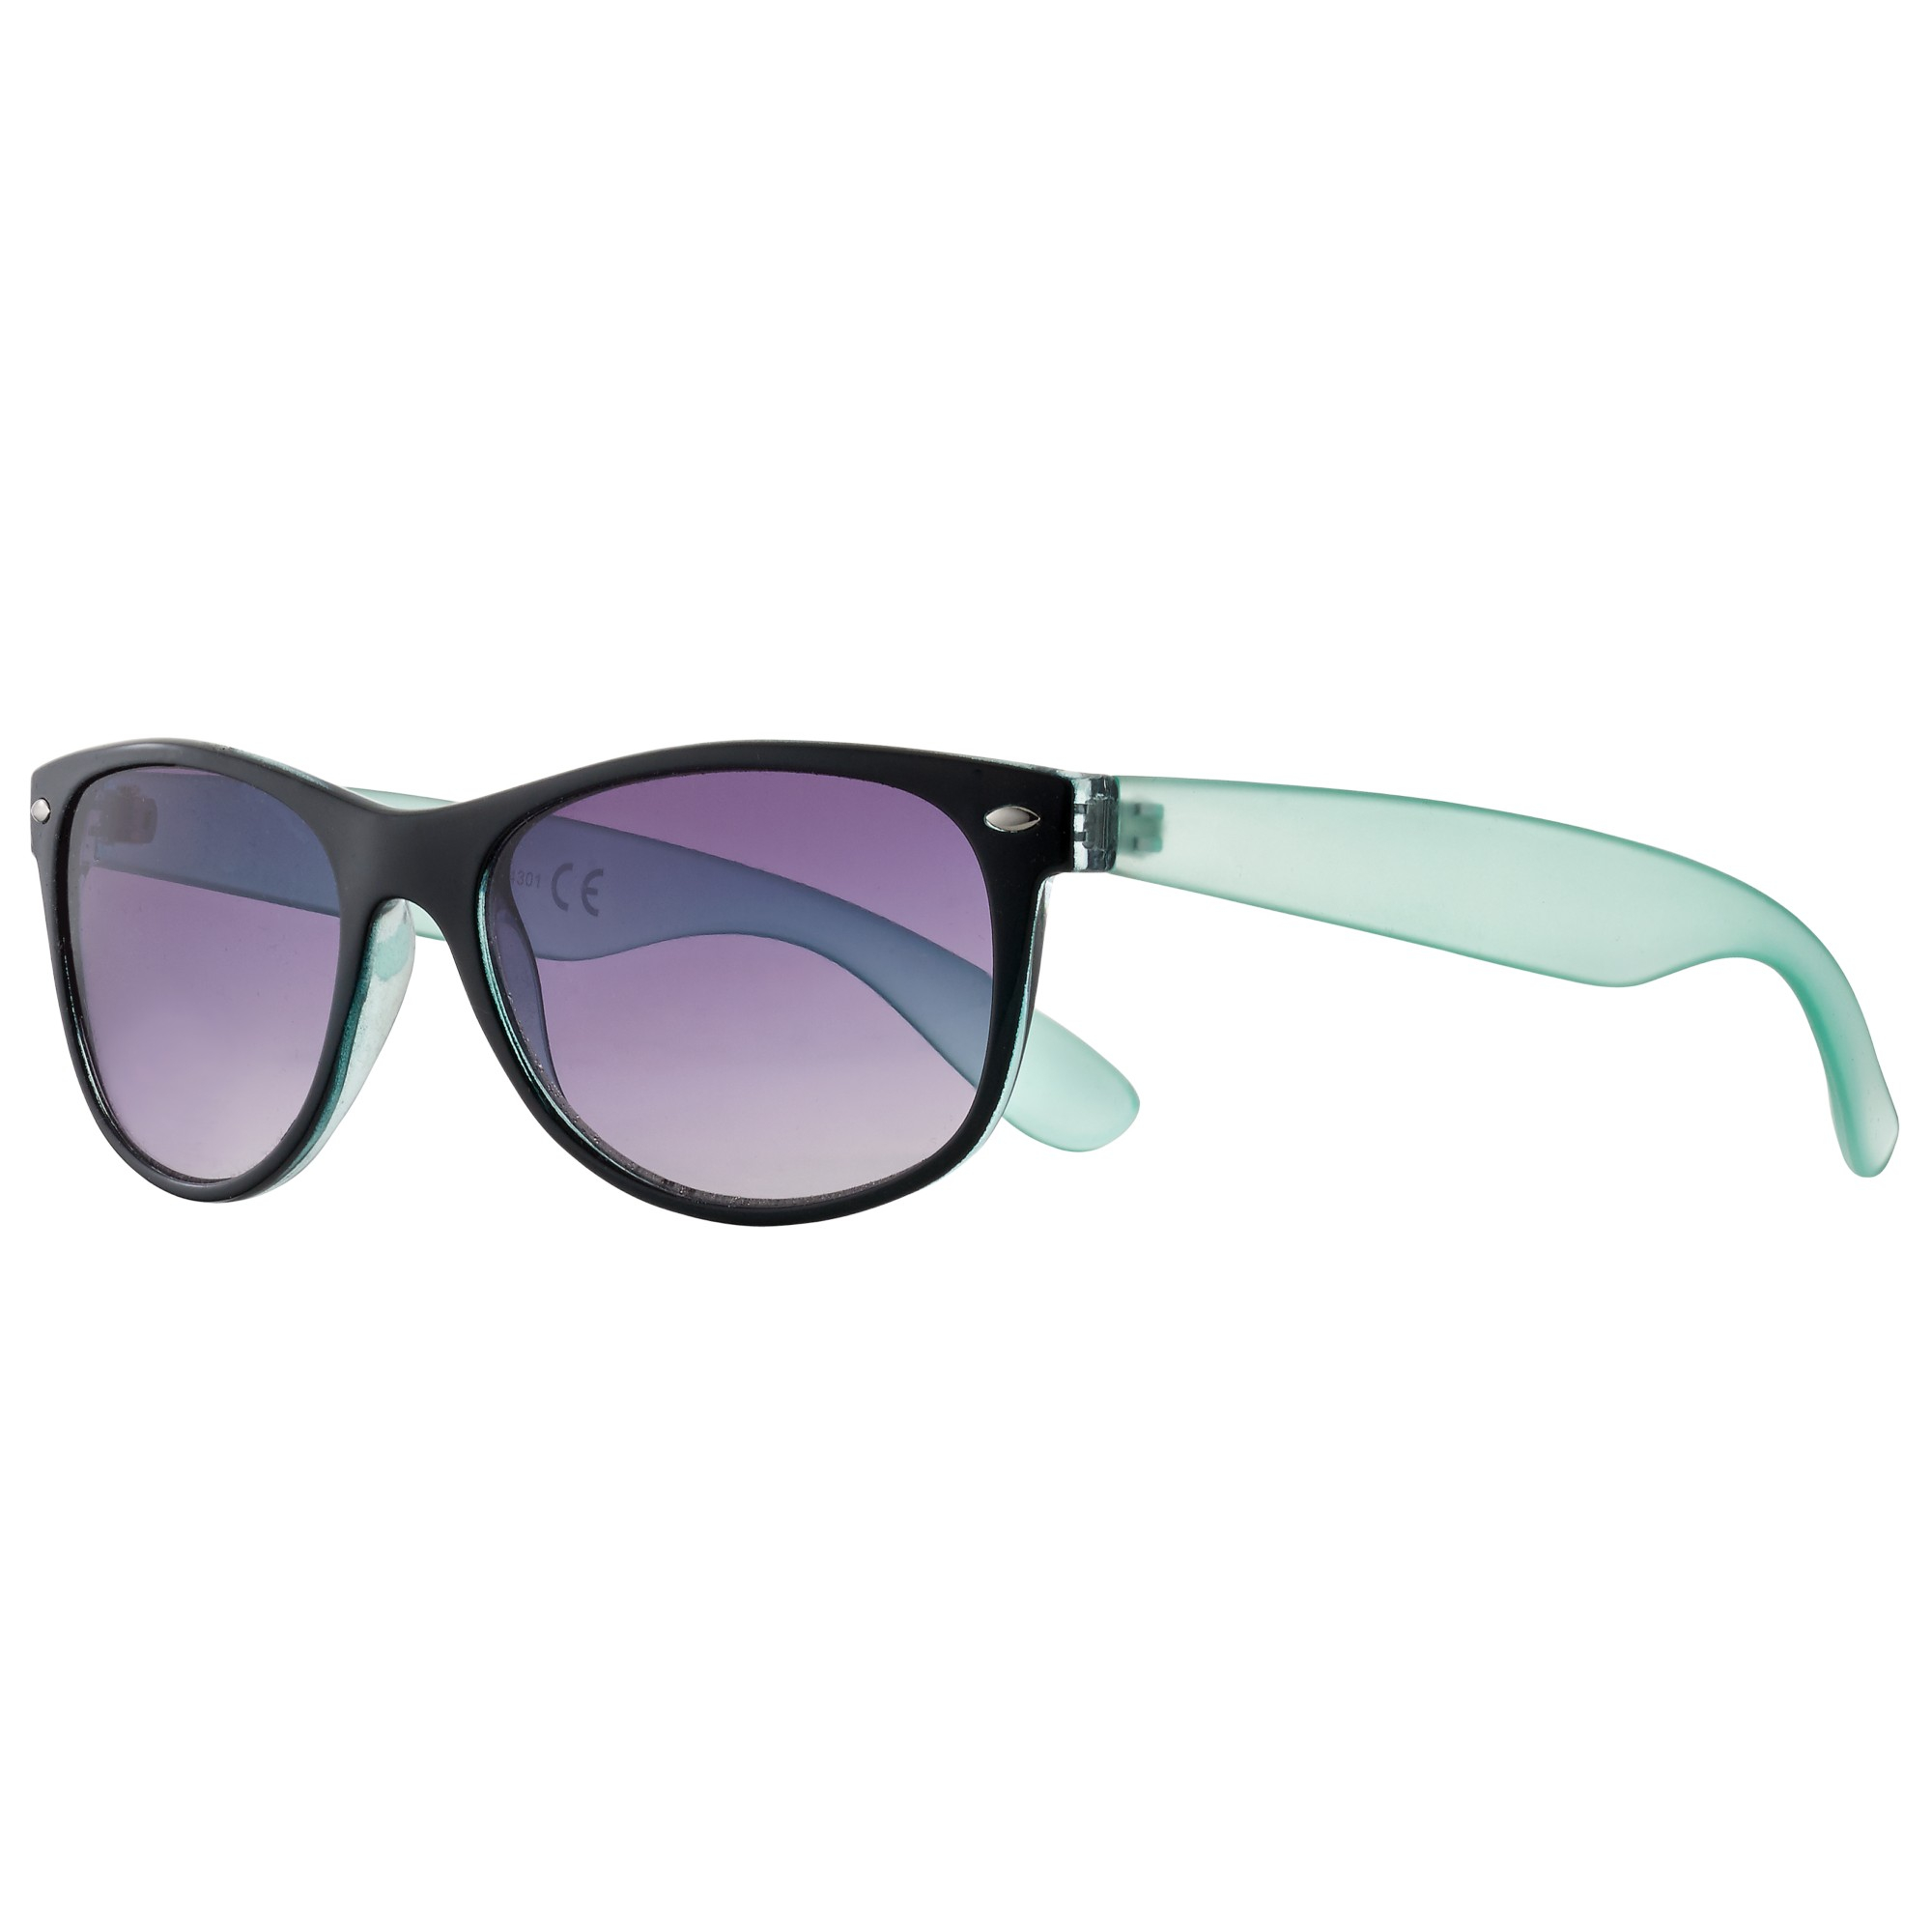 45a0bdcc91 John Lewis D-frame Sunglasses in Green - Lyst